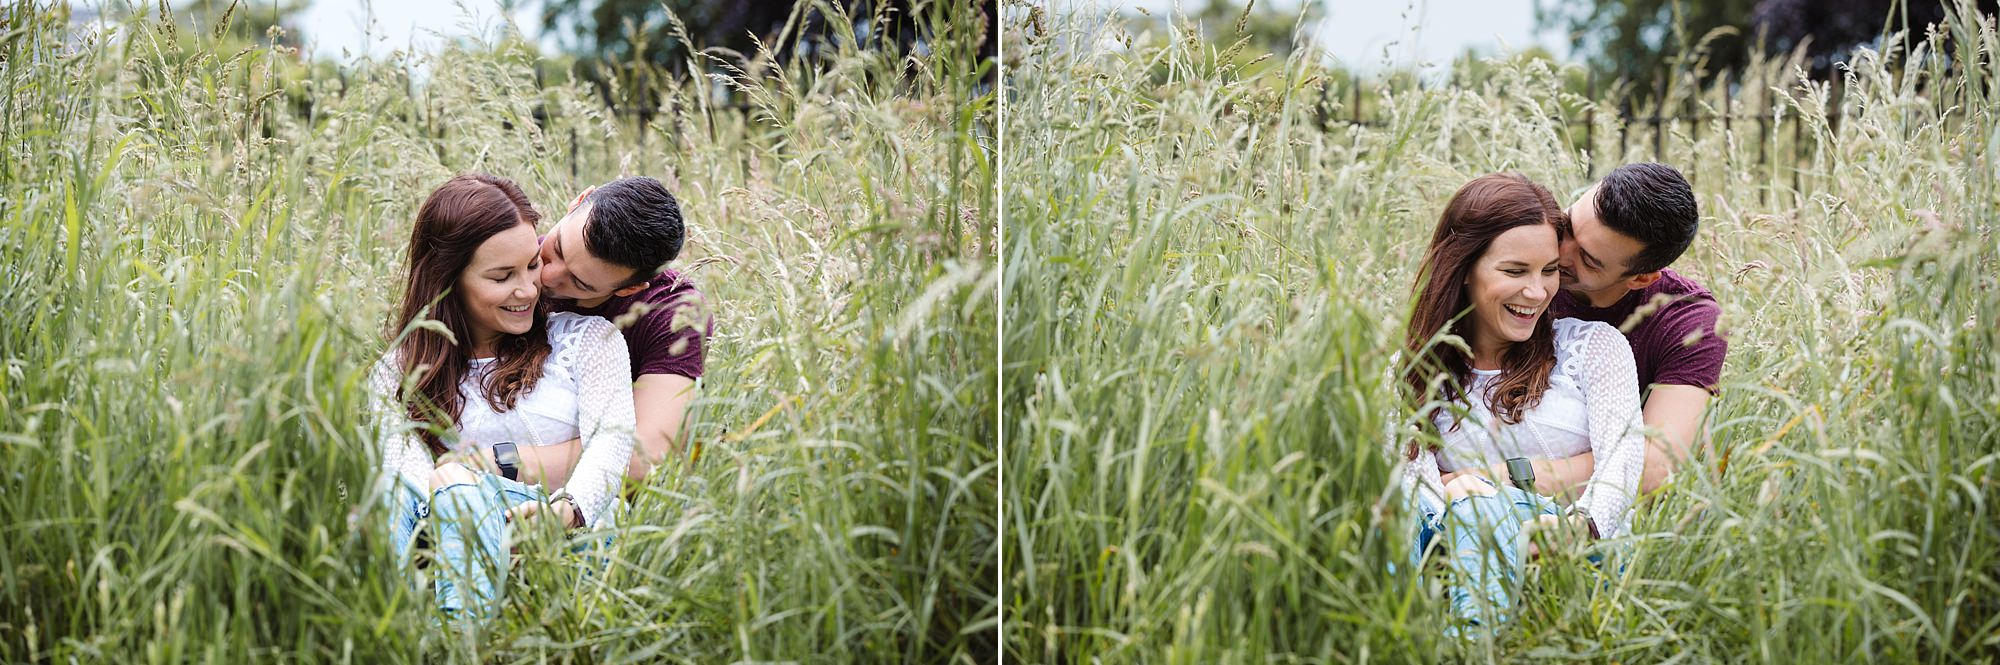 Countryside engagement photography couple in one grass